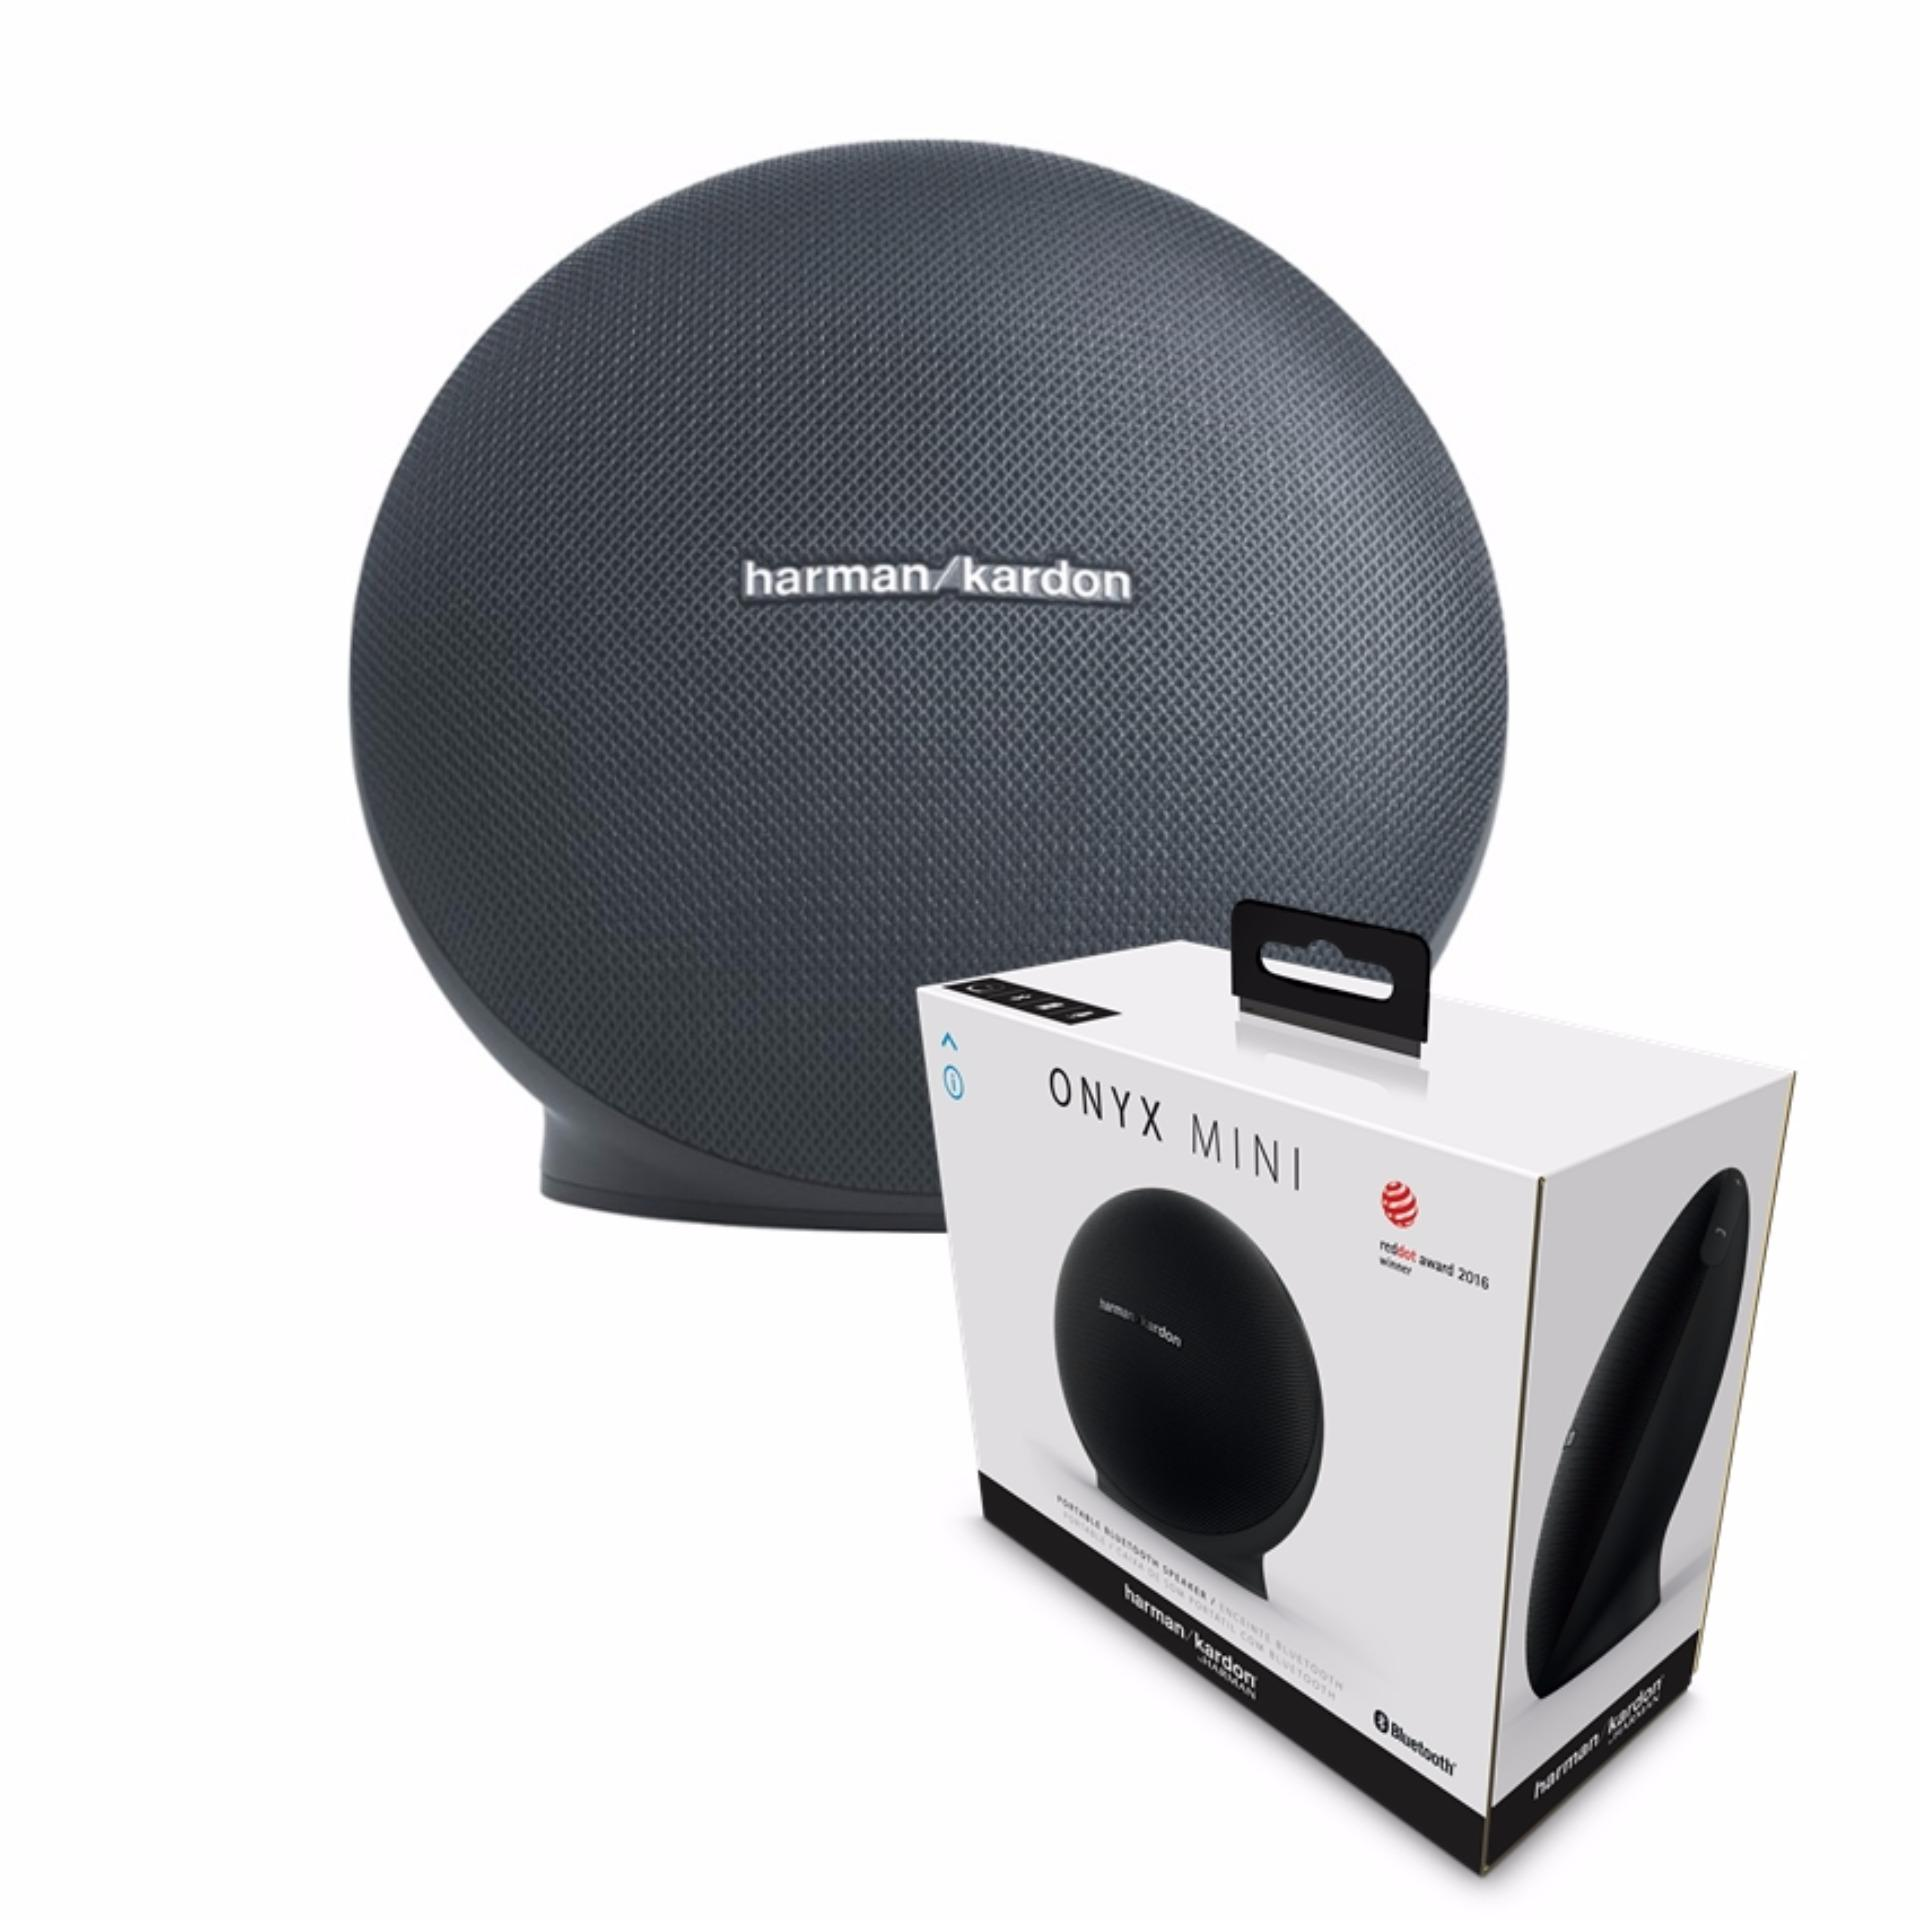 Harga Speaker Bluetooth Onyx Mini Portable By Harman Kardon Hitam Paling Murah